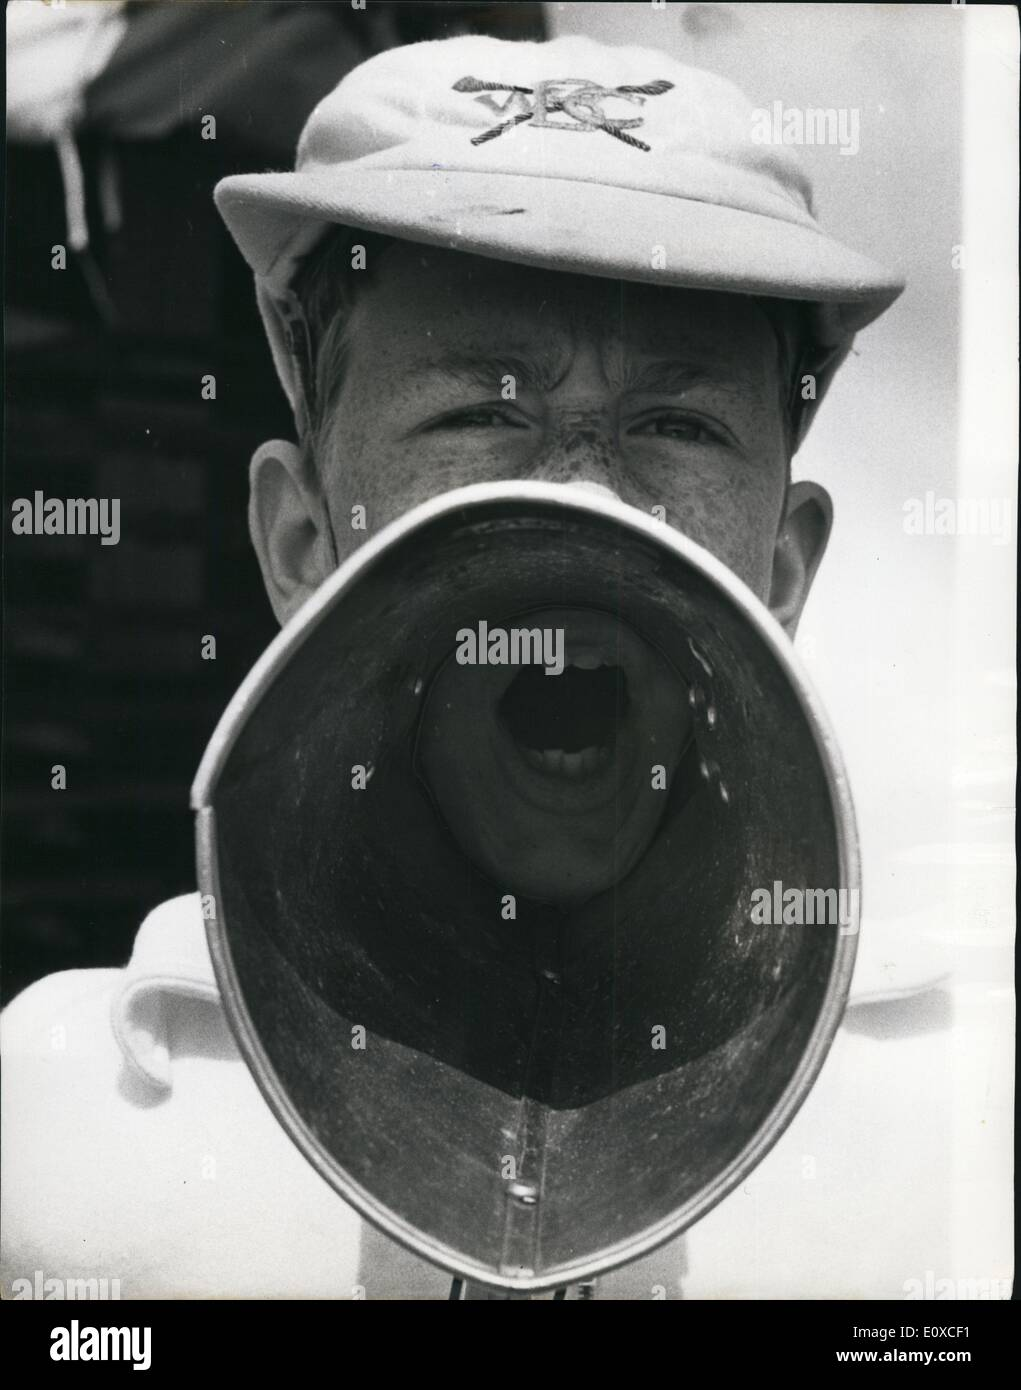 Jun. 06, 1966 - The Stroke's Eye-View Of The Cox: Unusual view - the one the stroke gets - of Mark Stanford, who coxed the Wycliffe college, beat ( to defeat unfortunately), at the Henley royal Regatta, which began yesterday. - Stock Image